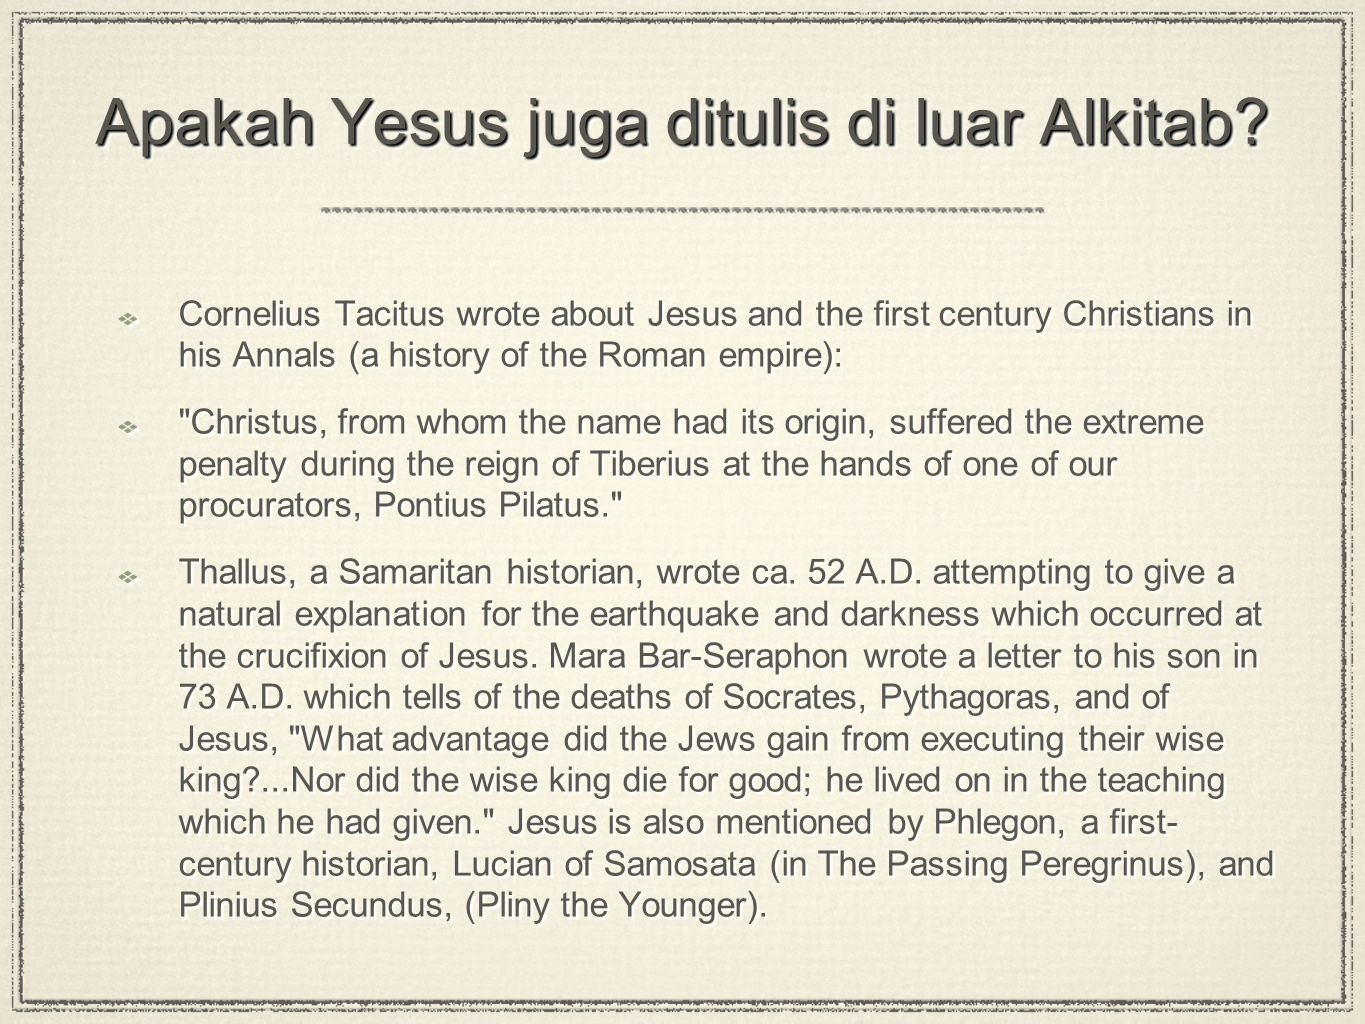 Apakah Yesus juga ditulis di luar Alkitab? Cornelius Tacitus wrote about Jesus and the first century Christians in his Annals (a history of the Roman